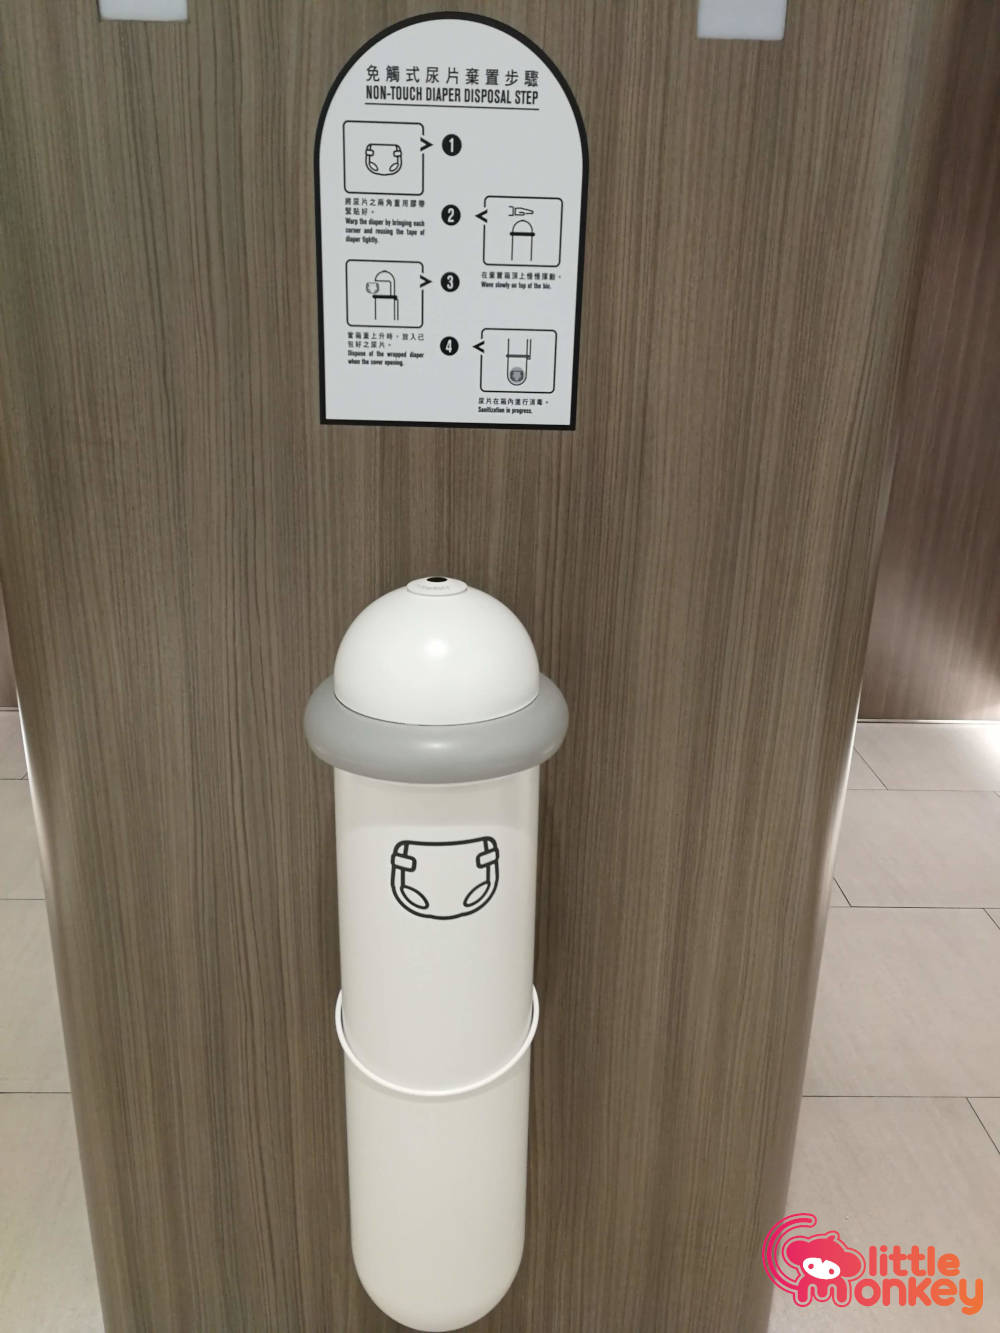 Nursery room's non-touch diaper disposal in Times Square Shopping Mall